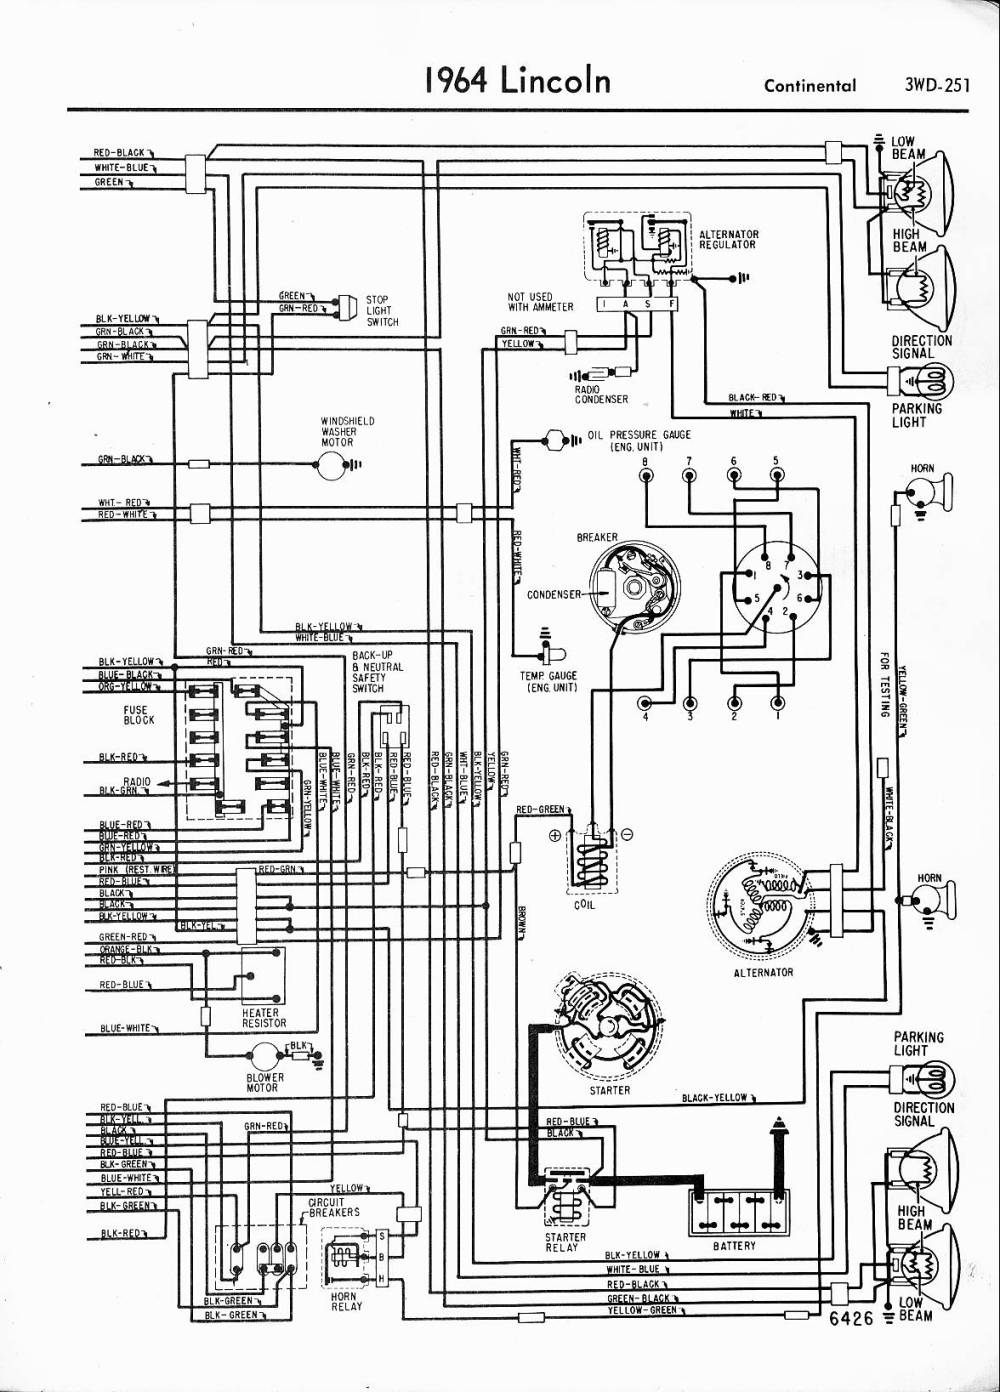 medium resolution of free lincoln wiring diagrams modern design of wiring diagram u2022 dolphin wiring diagrams lincoln wiring diagrams